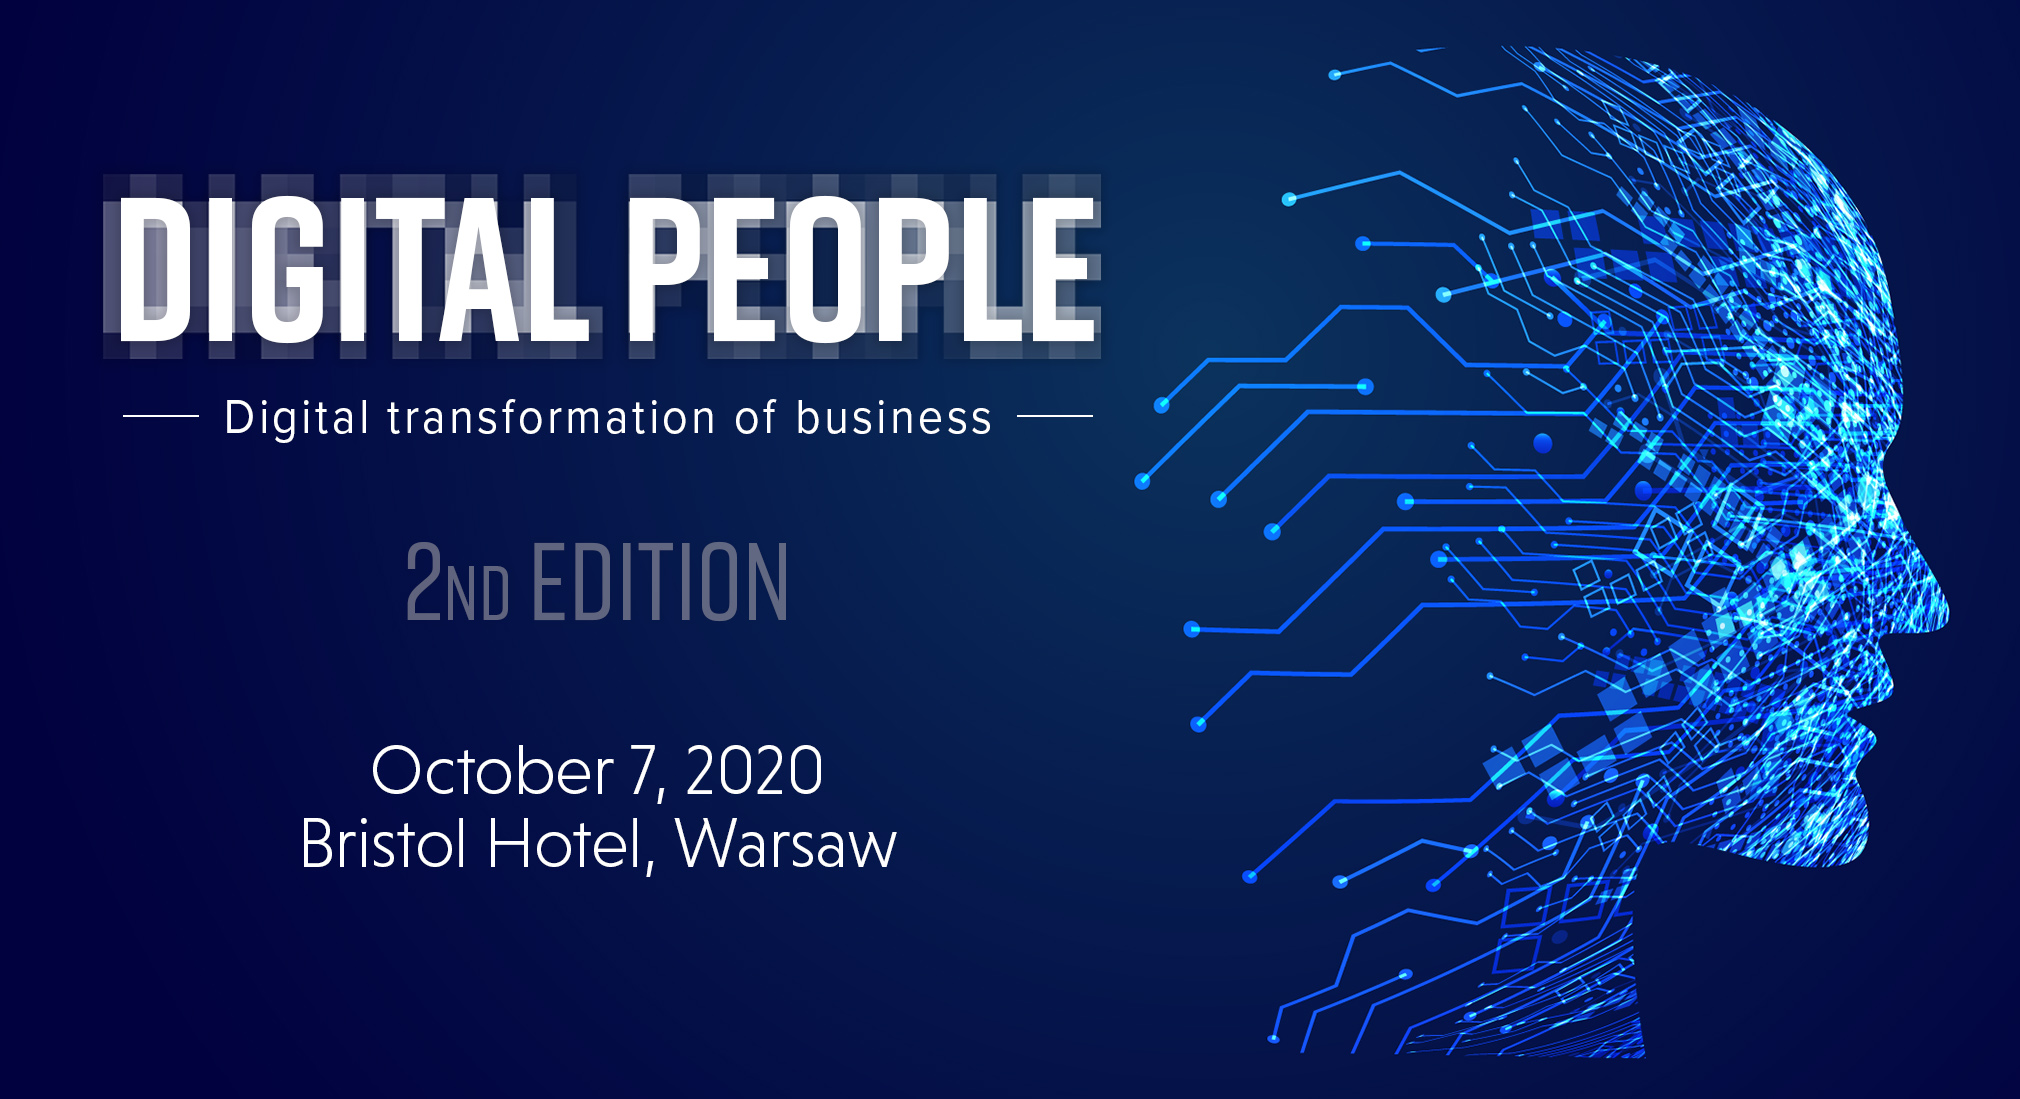 Digital People baner EN